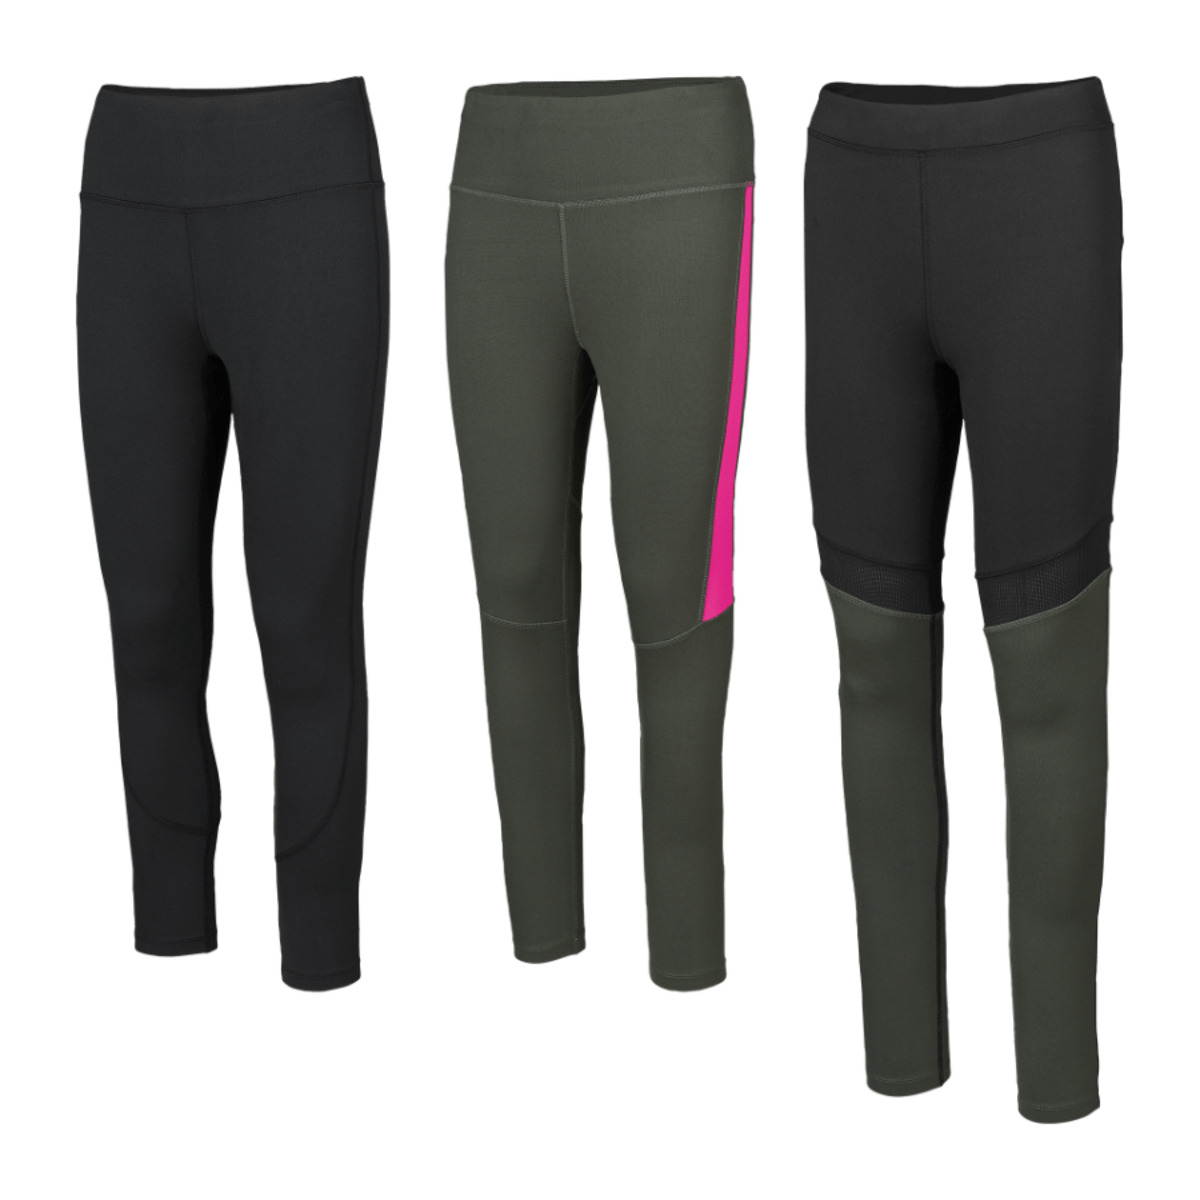 Bild 1 von ACTIVE TOUCH  	   Sport-Leggings